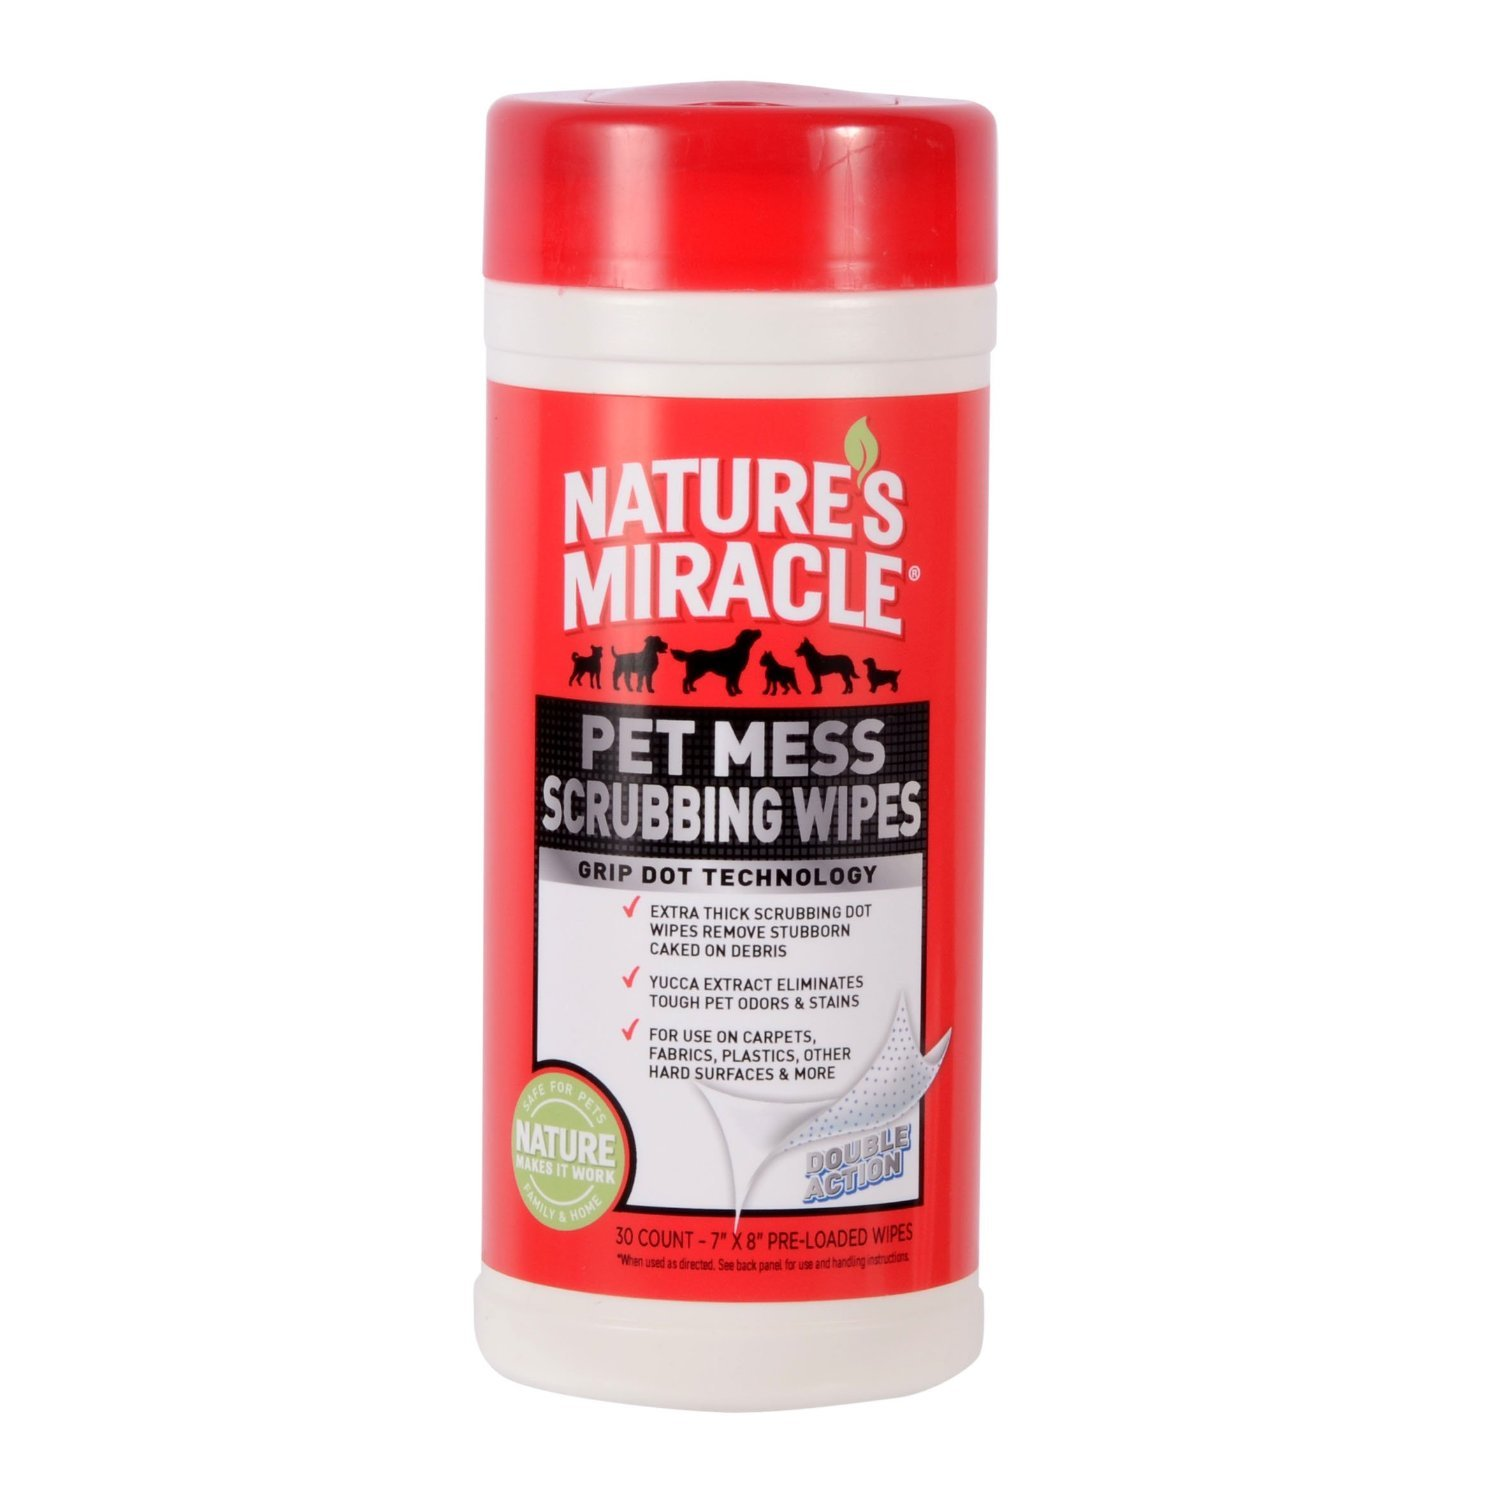 Nature's Miracle Pet Mess Scrubbing Wipes, 30 count (3 Pack)